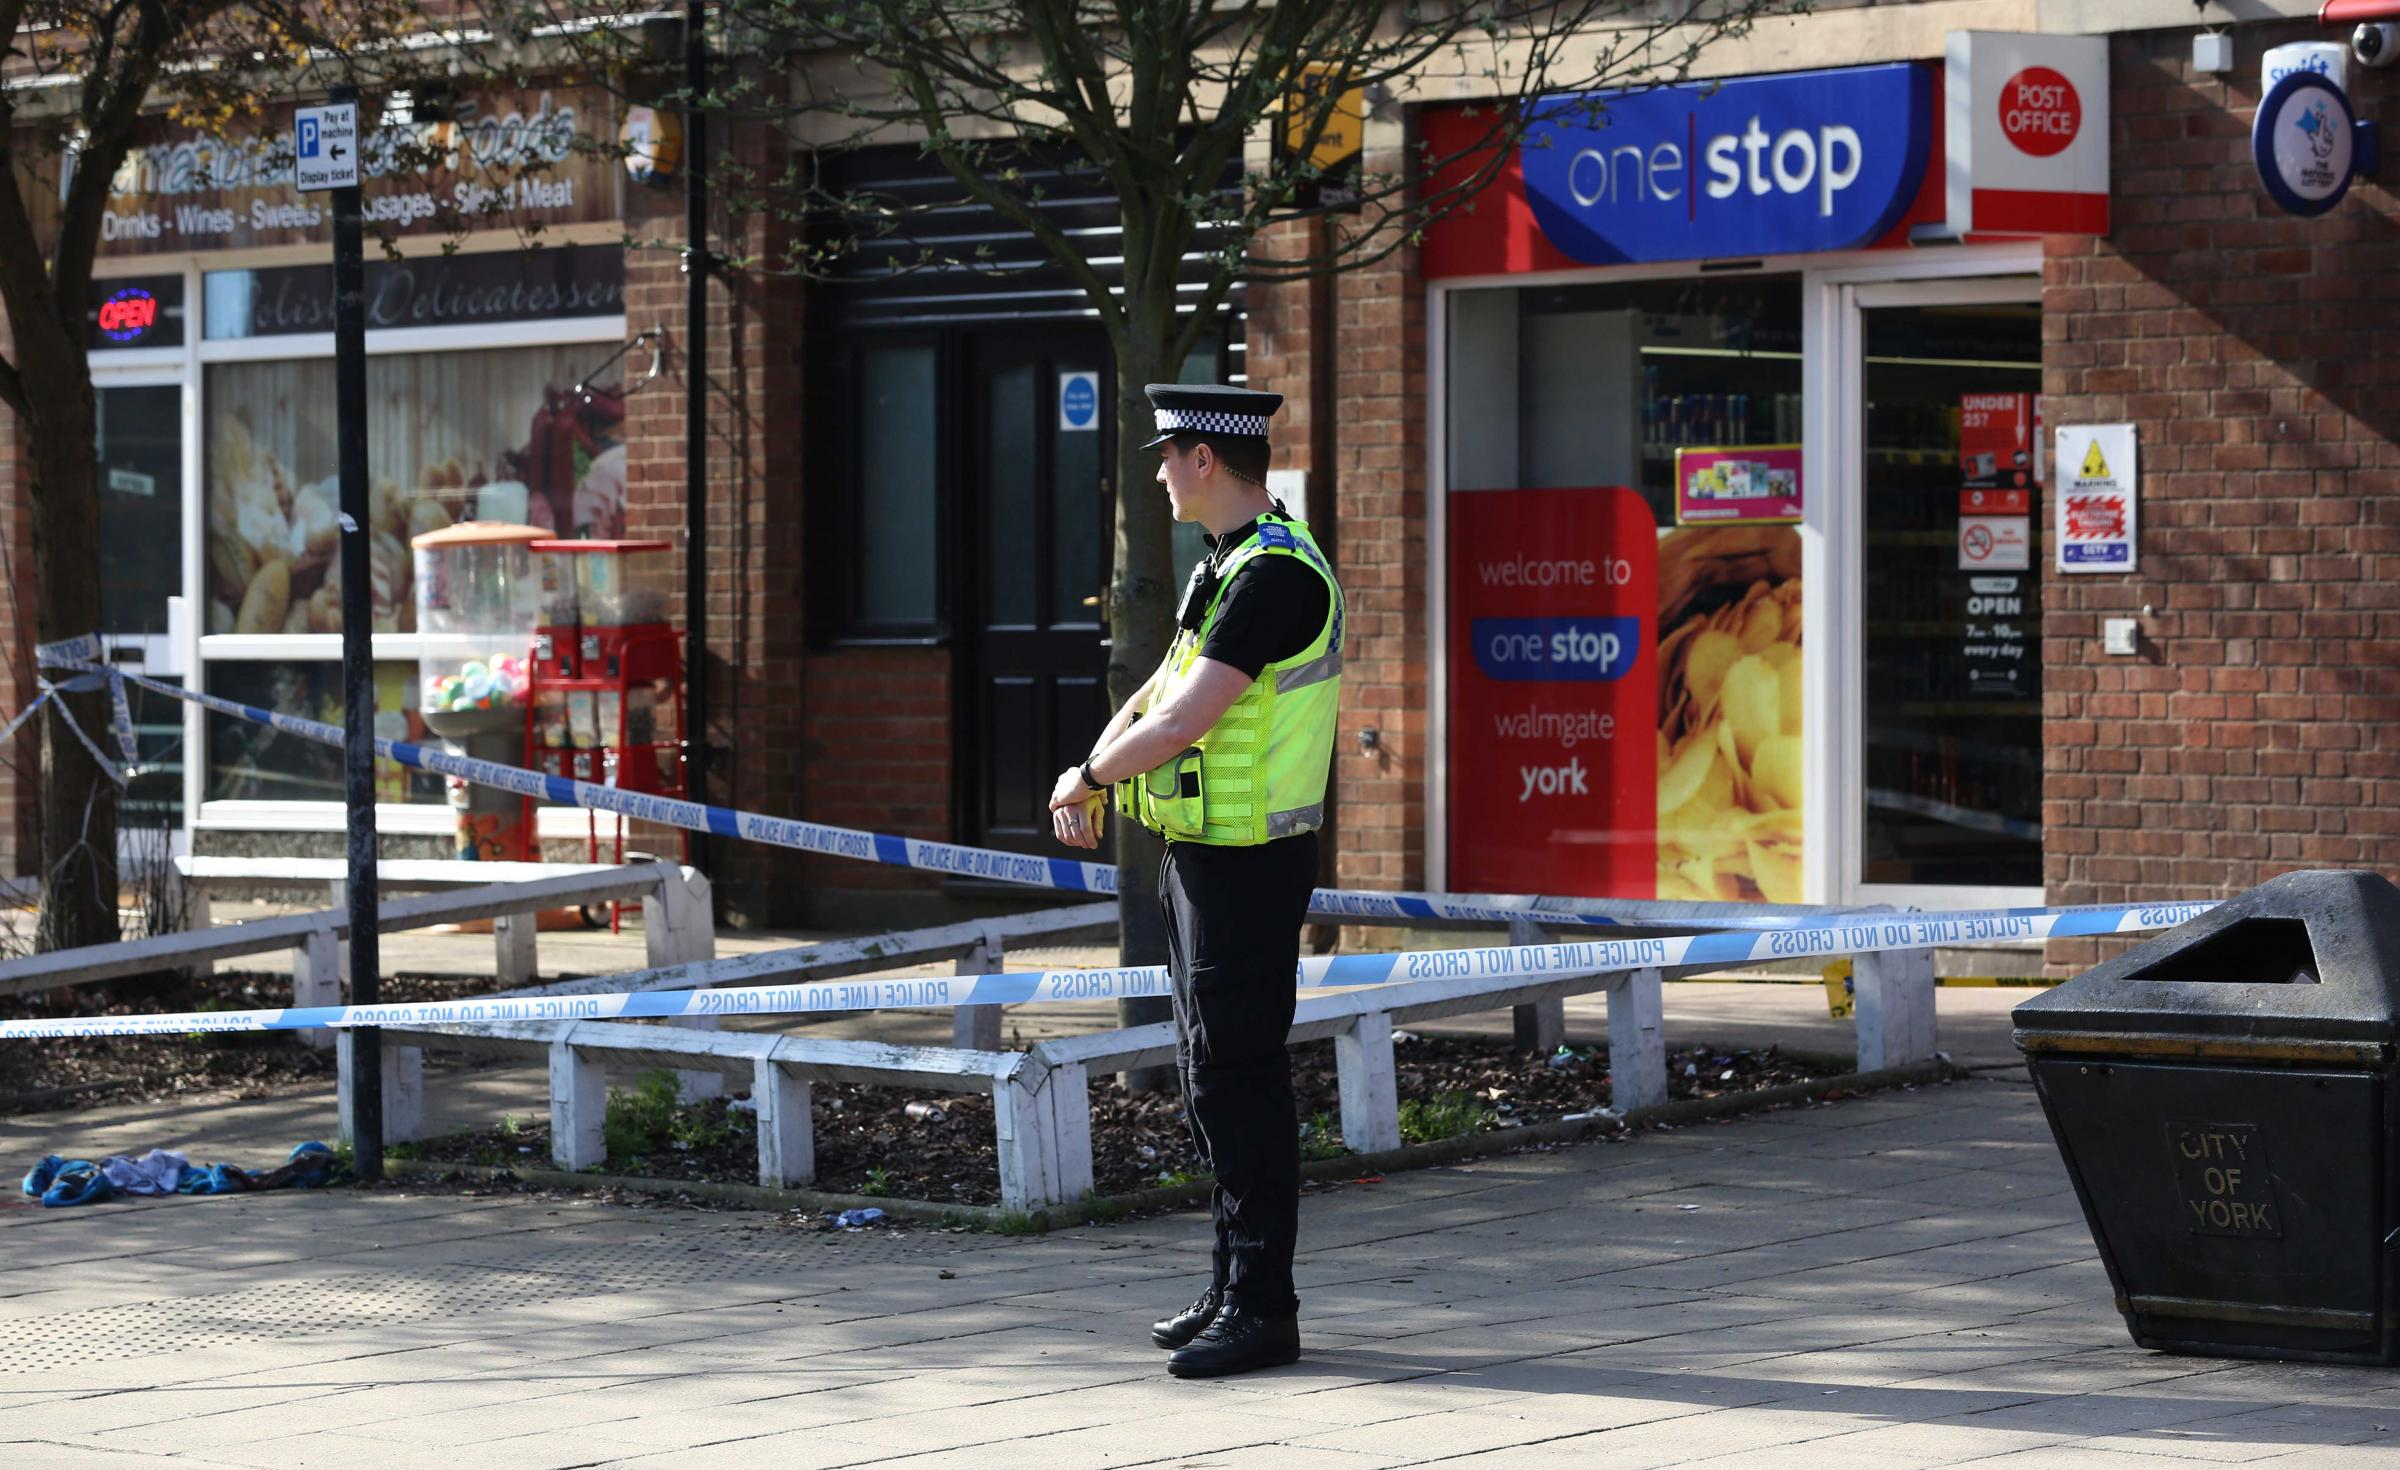 The cordon in place on Walmgate, York, this morning. Picture: Richard Doughty